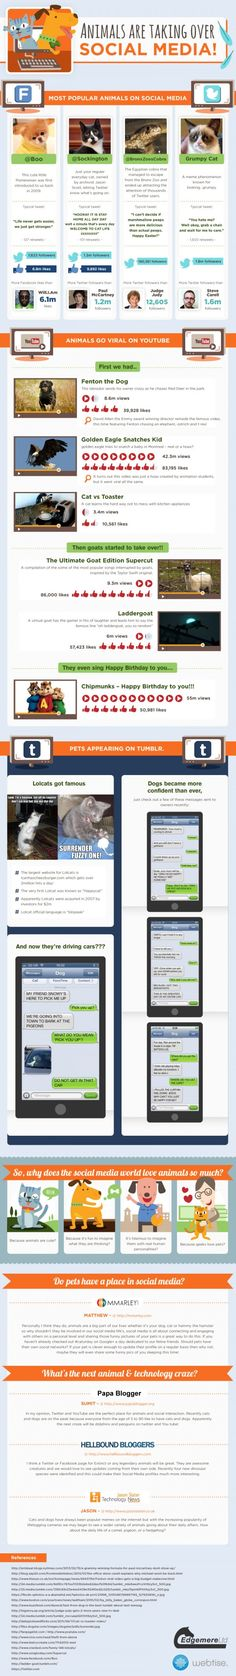 Animals Have Taken Over Social Media [INFOGRAPHIC]